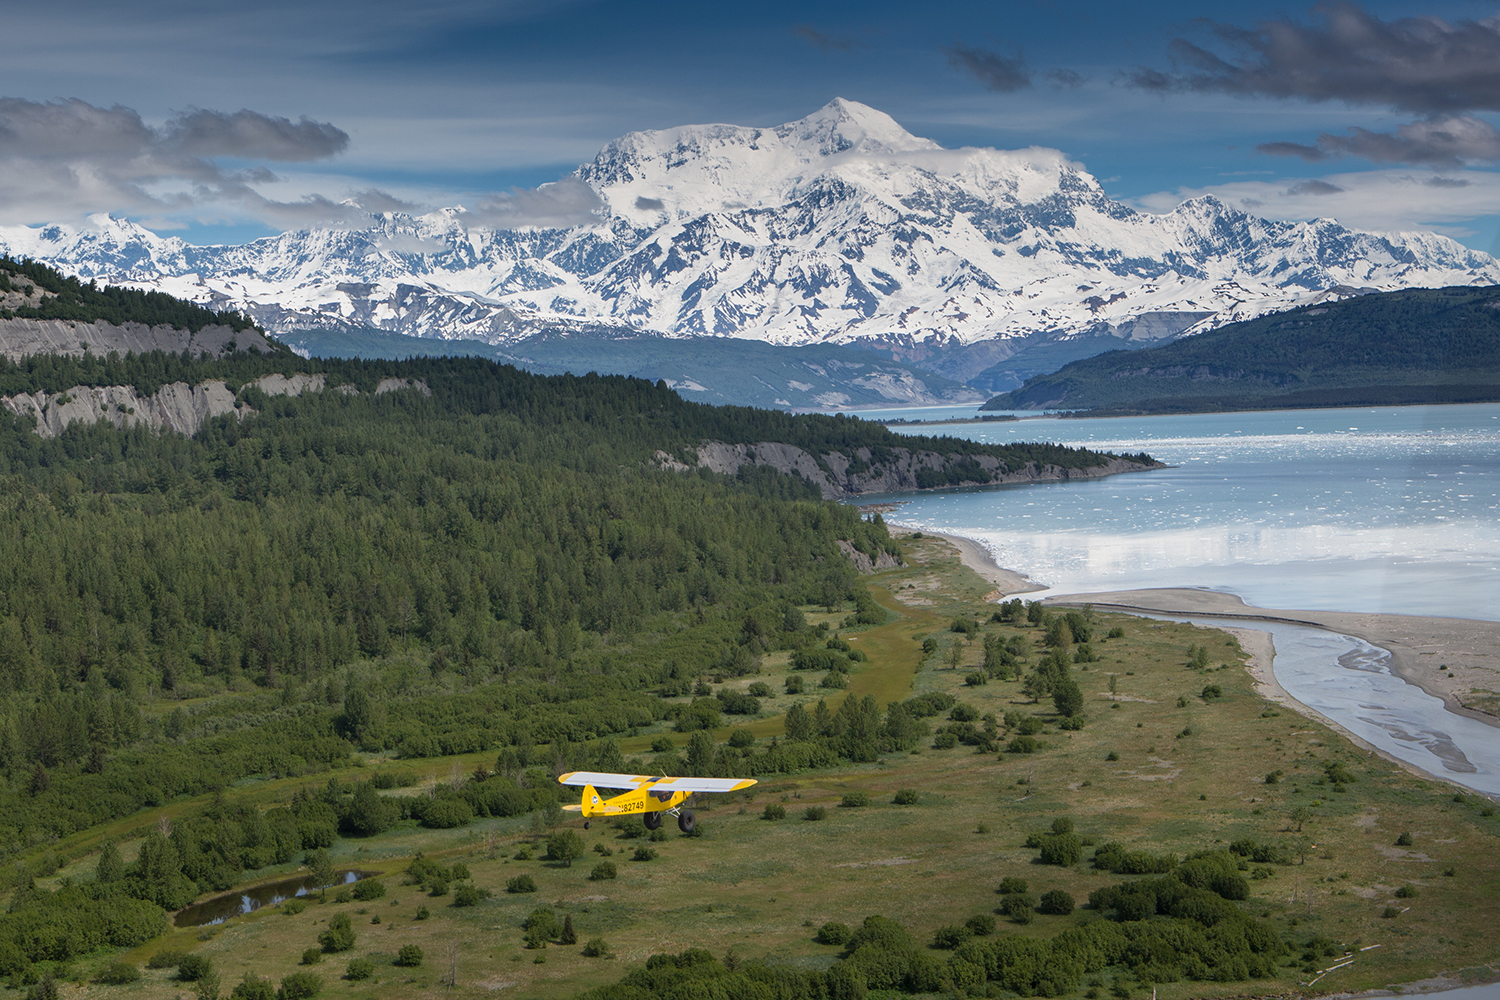 A trip to one of Alaska's most remote fly-in lodges